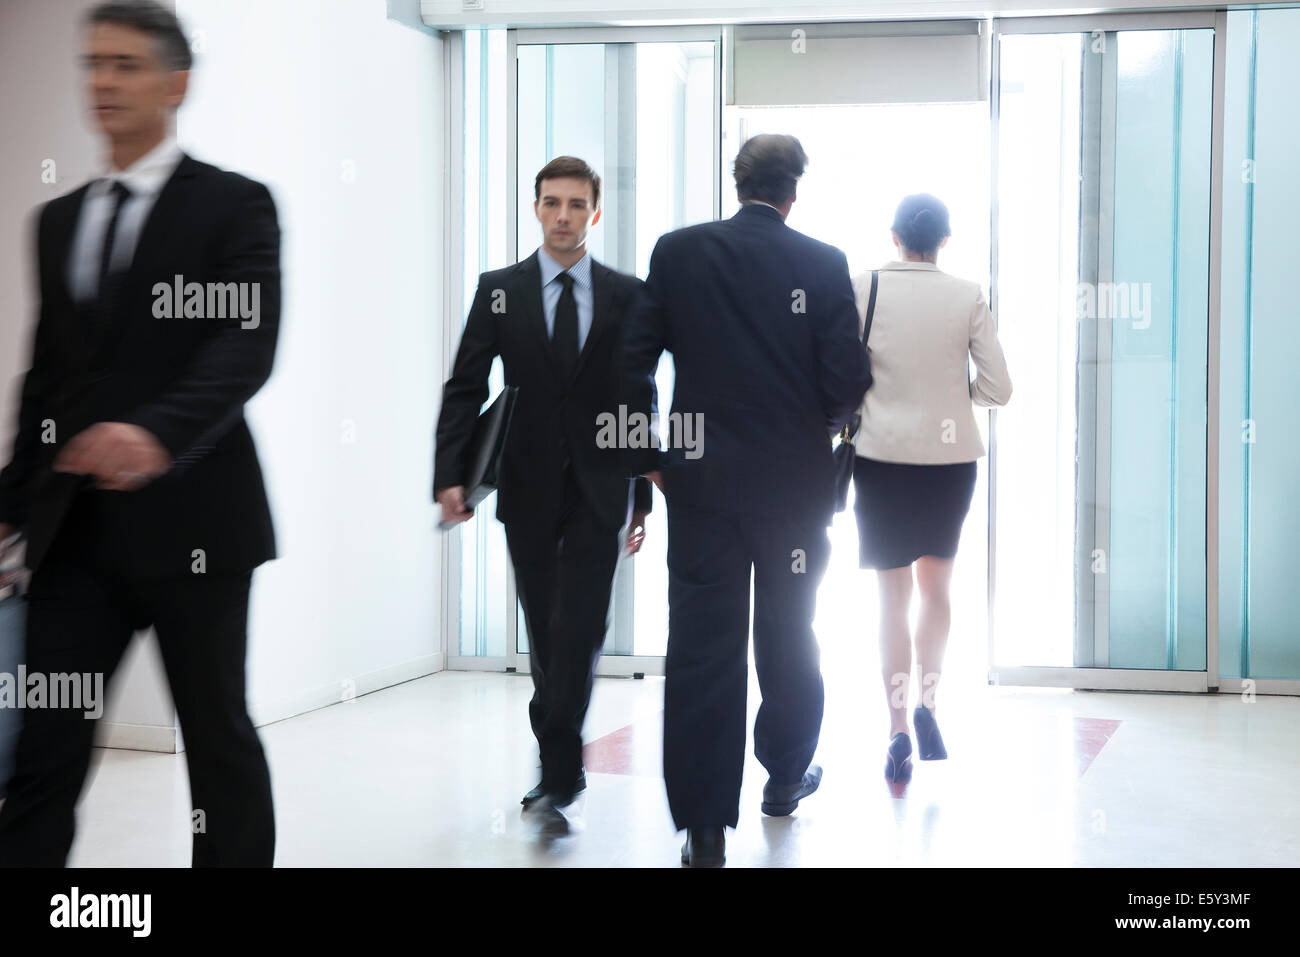 Business professionals passing through office building lobby - Stock Image